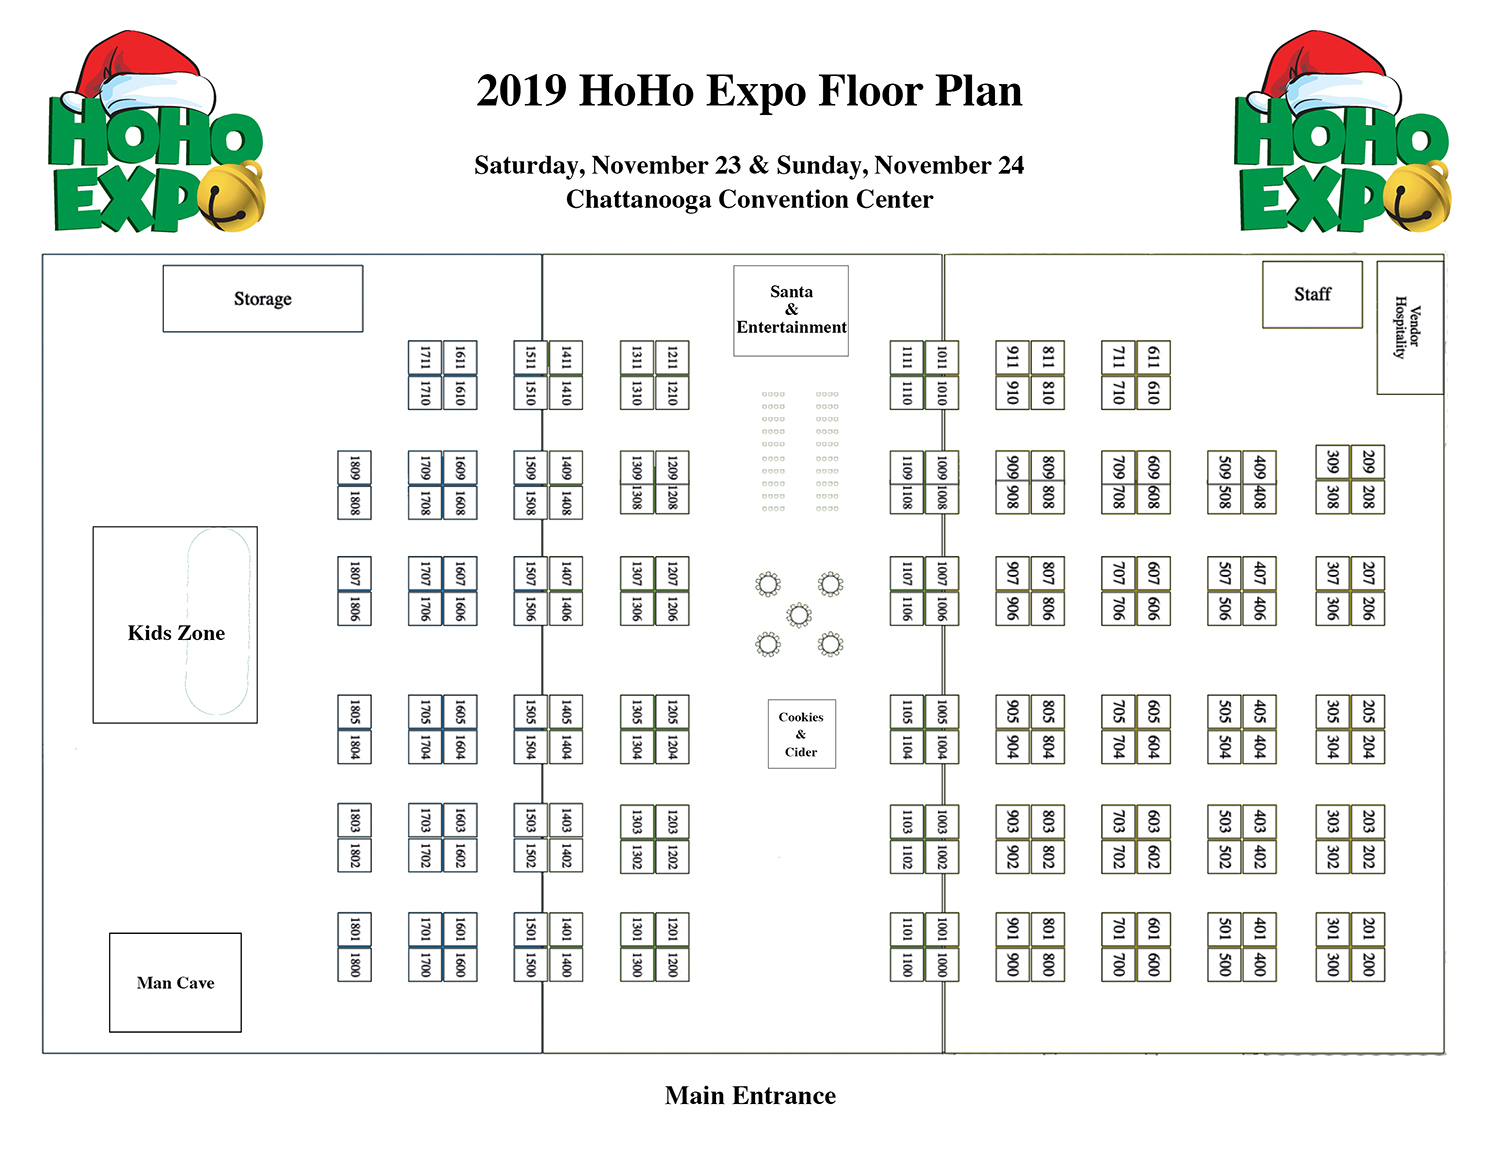 2019 HoHo Expo Floor Plan